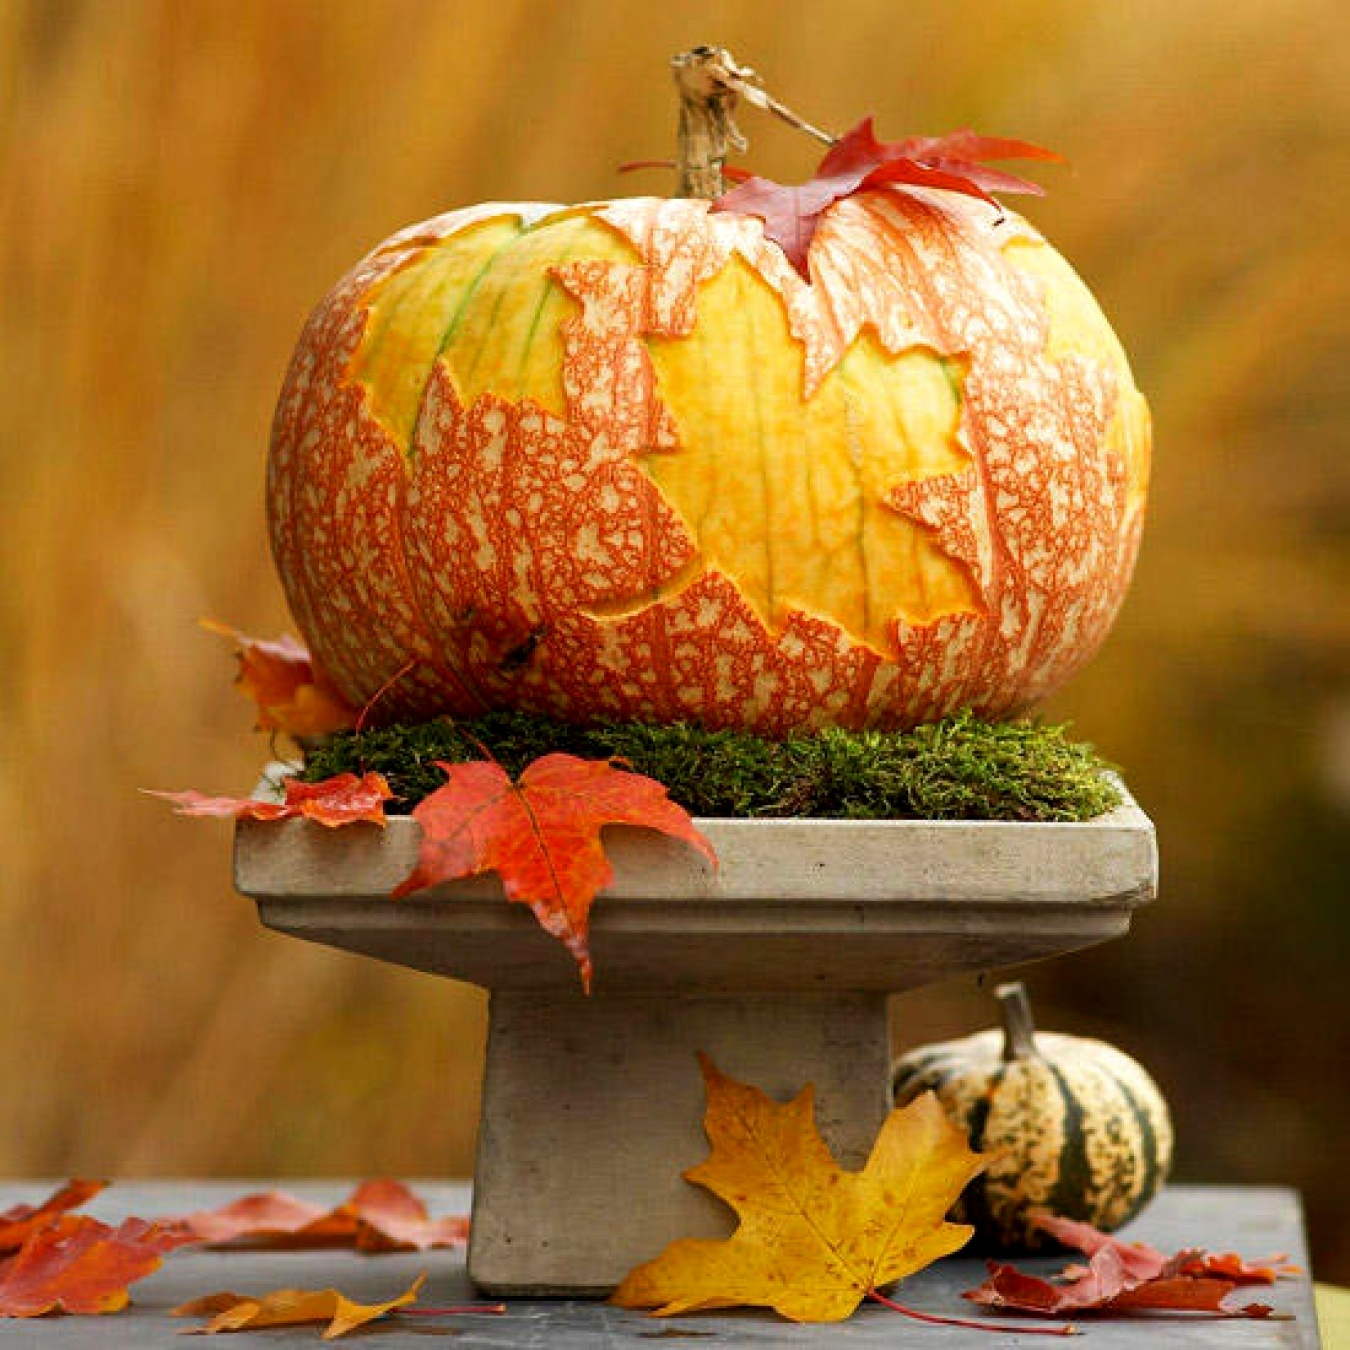 decorating-with-pumpkins-and-gourds-ideas-7